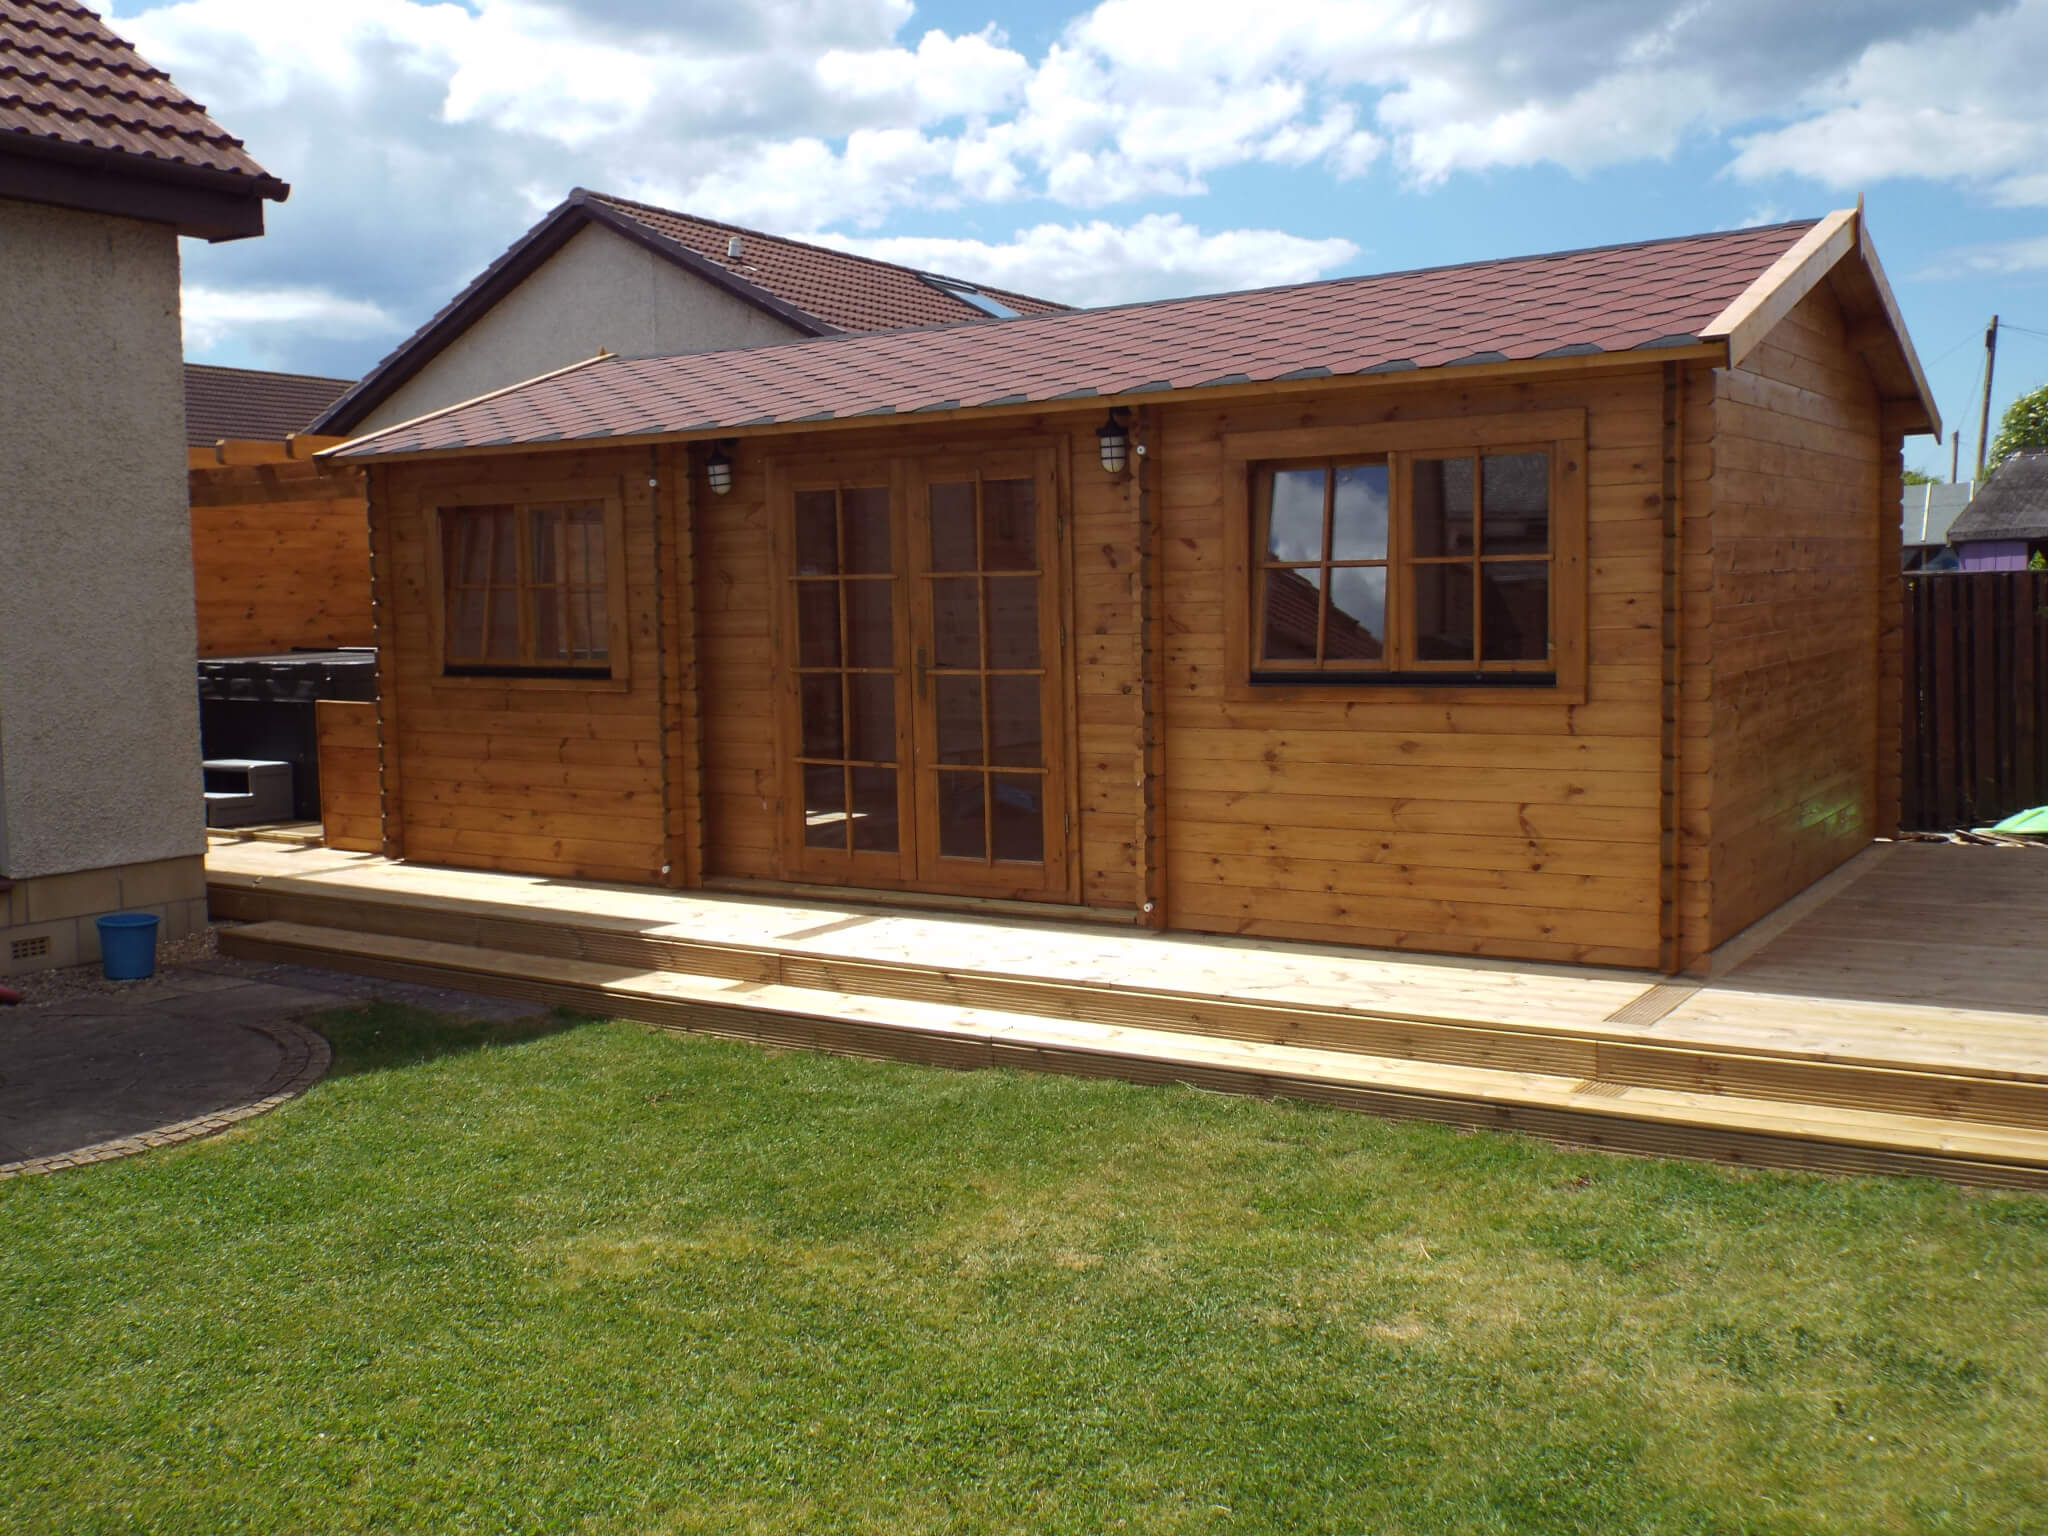 Une maison confortable pour vous log cabin rent scotland Log cabins with hot tubs scotland